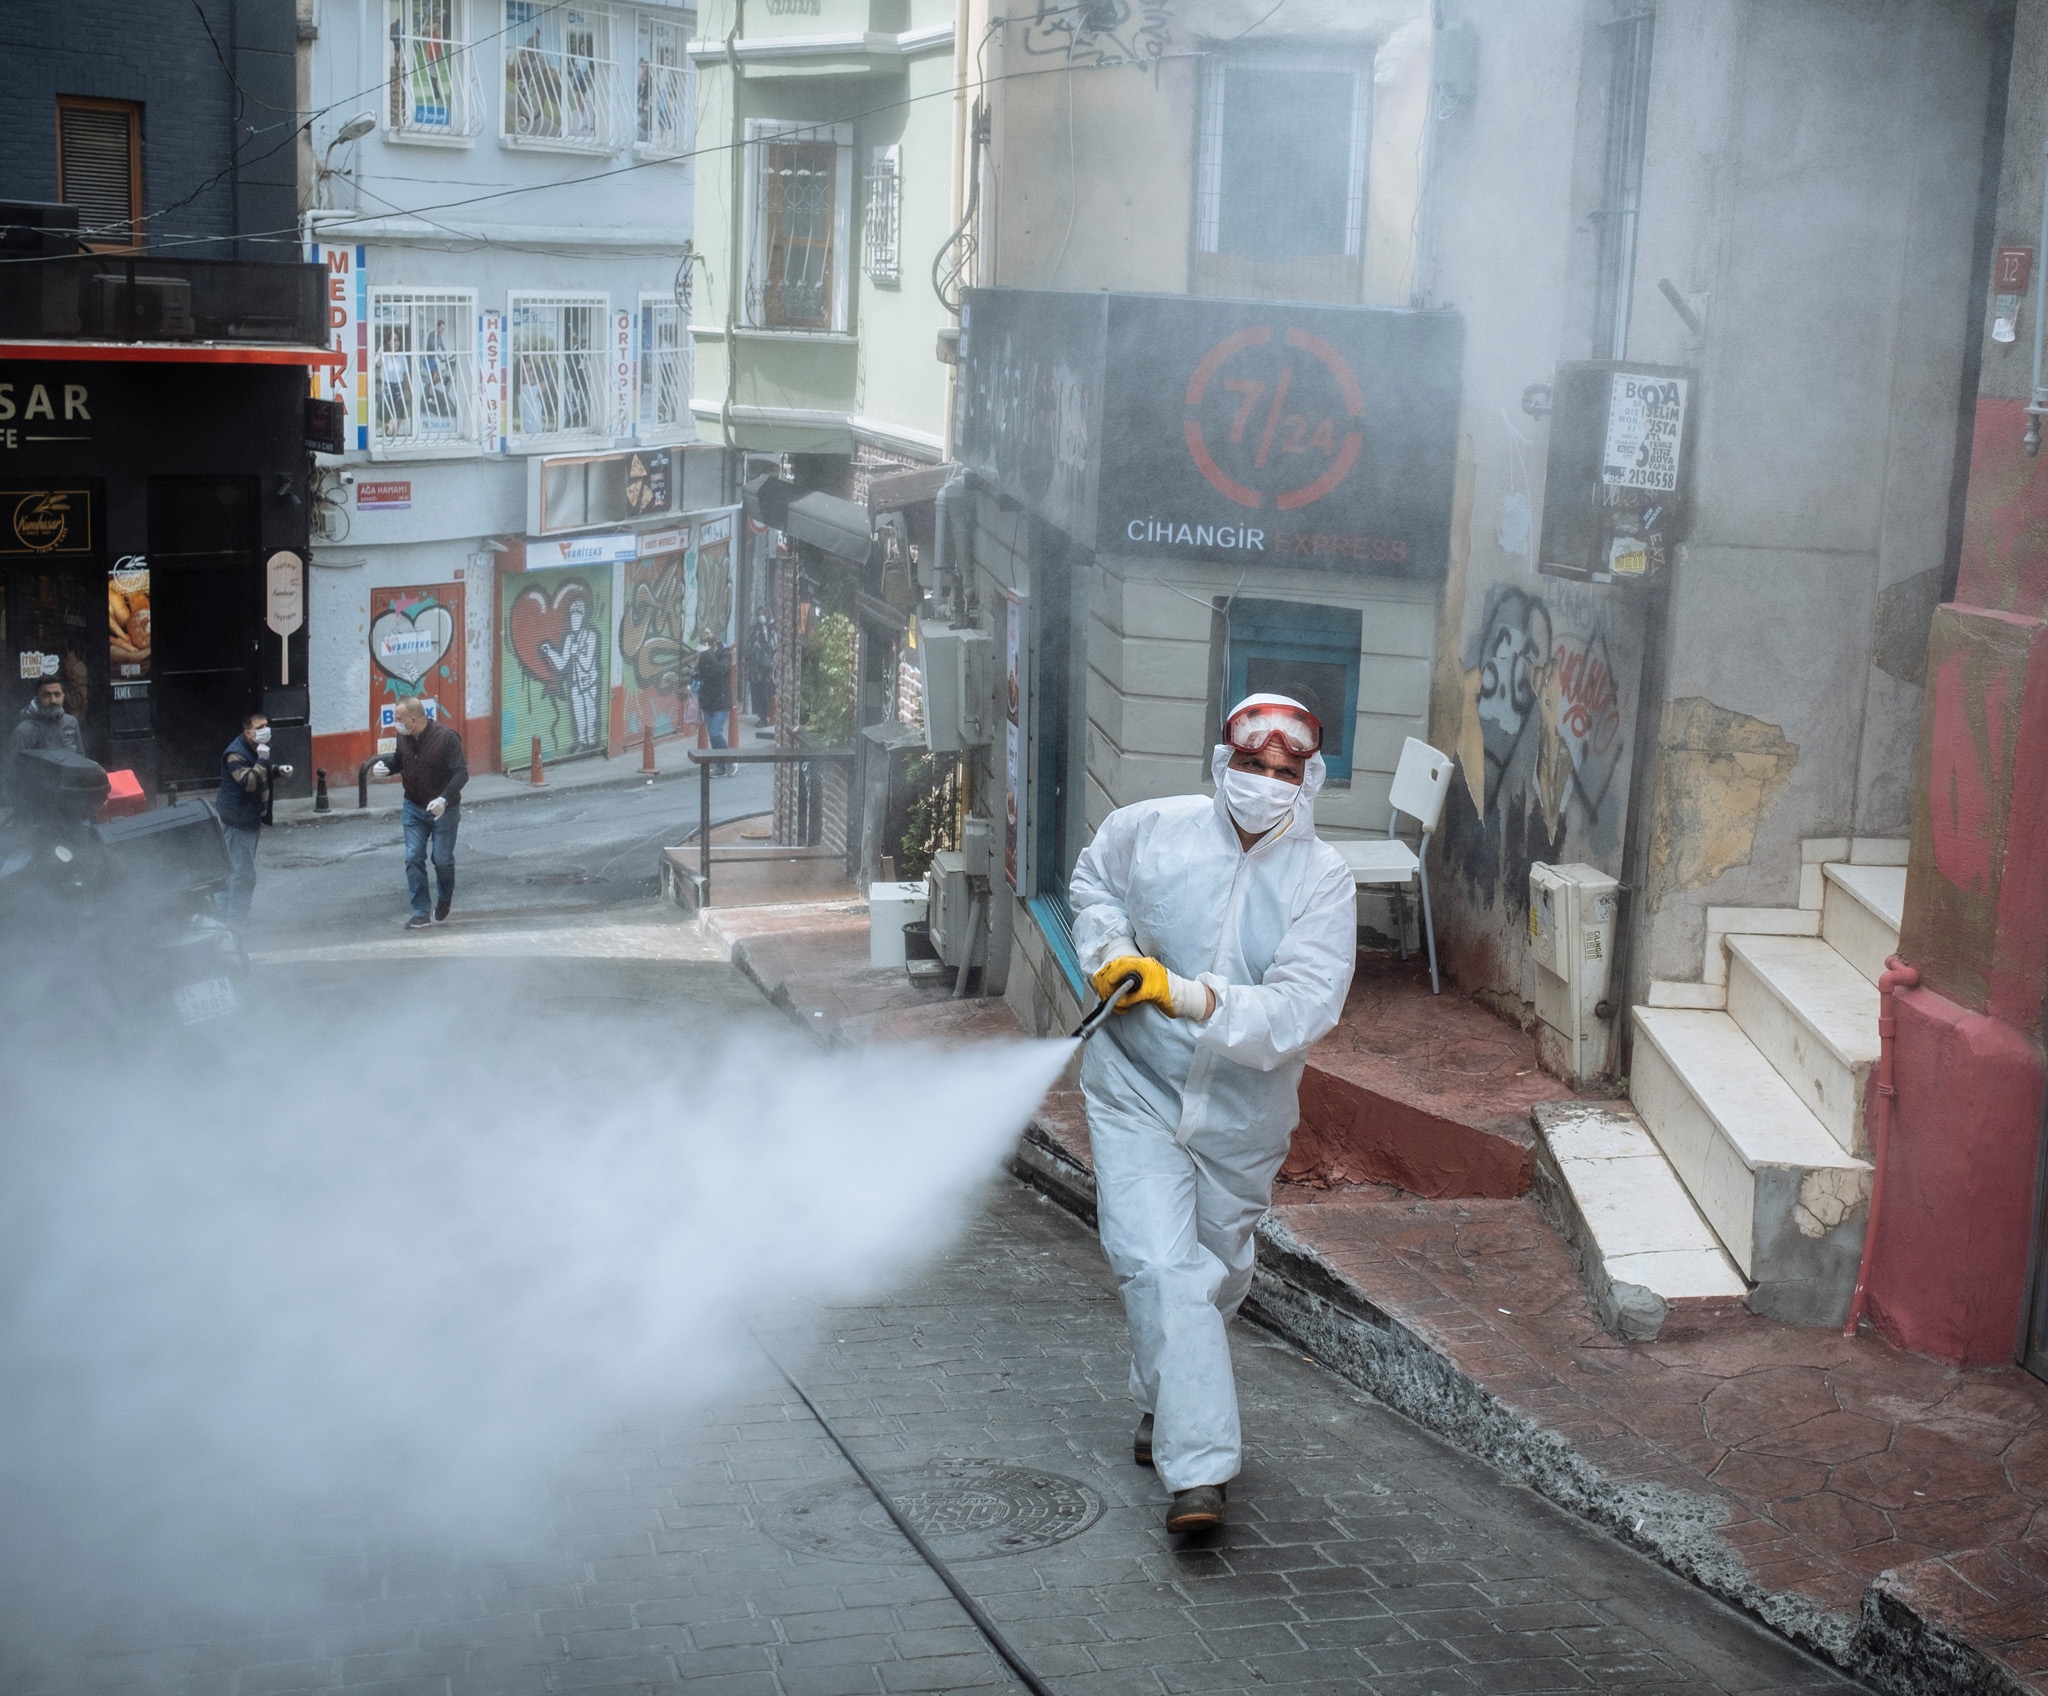 Picture of a person spraying disinfectant on the streets